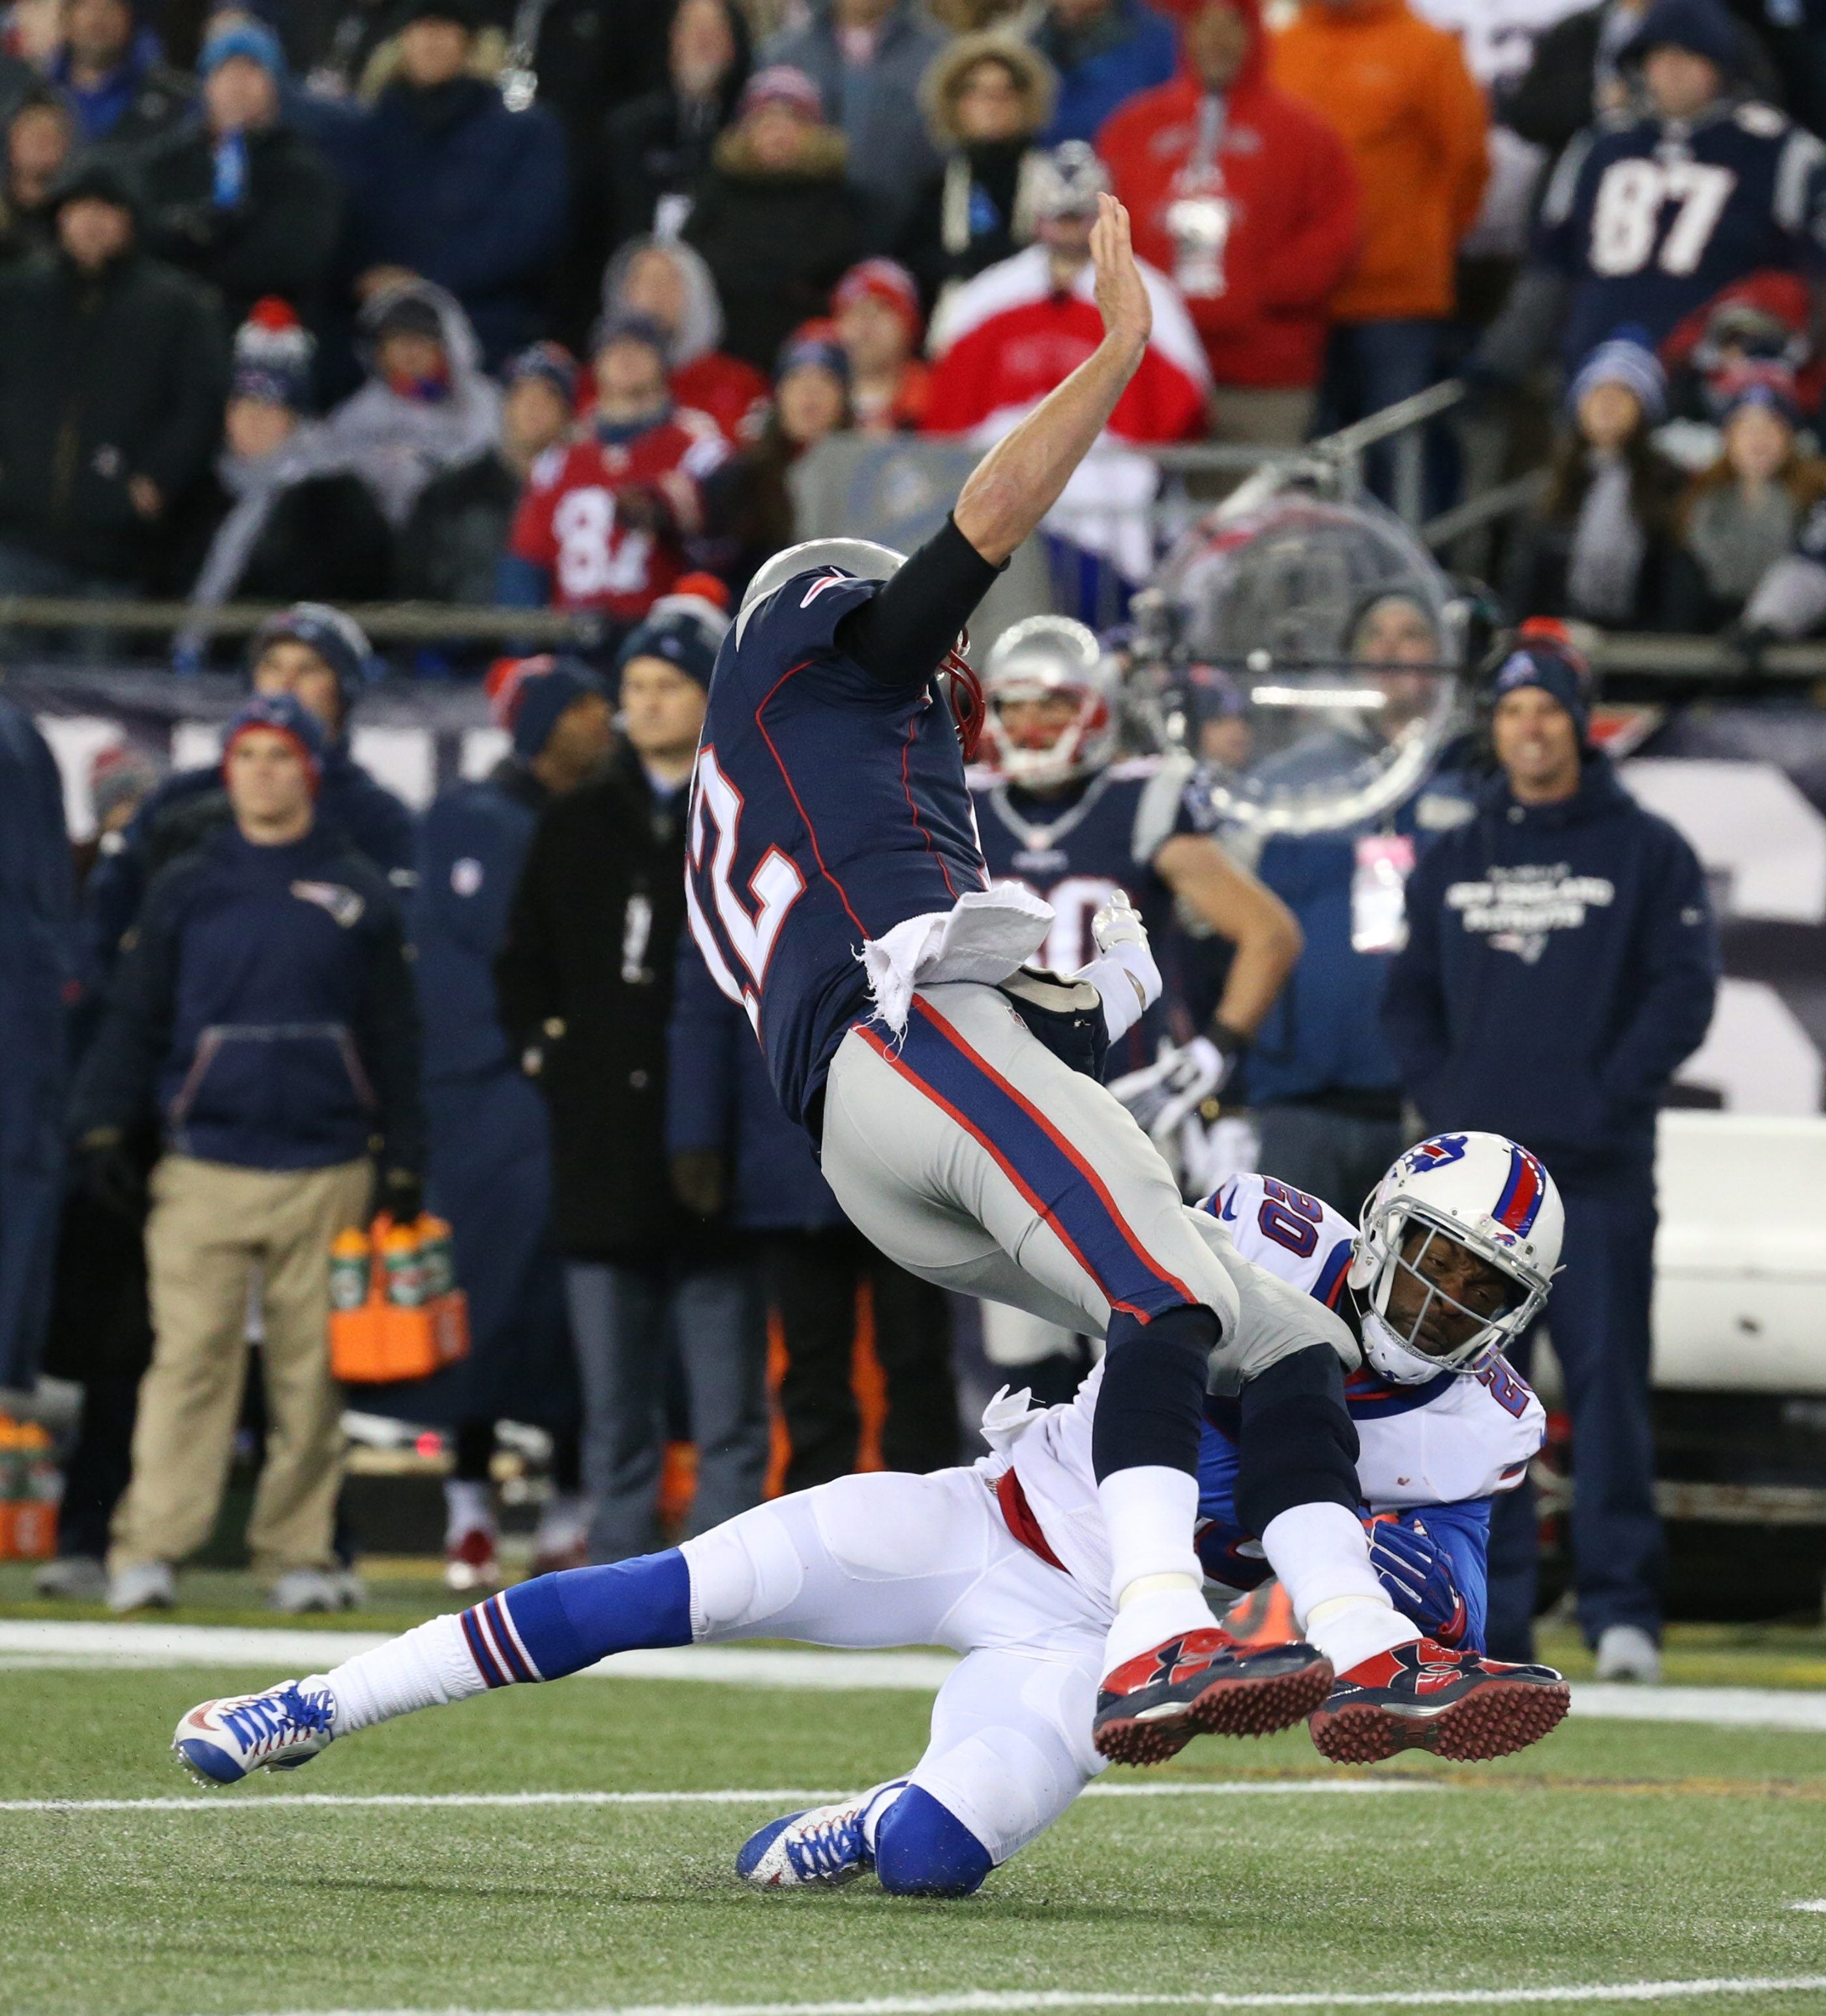 New England quarterback Tom Brady is hit by Buffalo's Corey Graham after throwing a pass in the second quarter Monday. The Bills kept the pressure coming on Brady throughout the game.